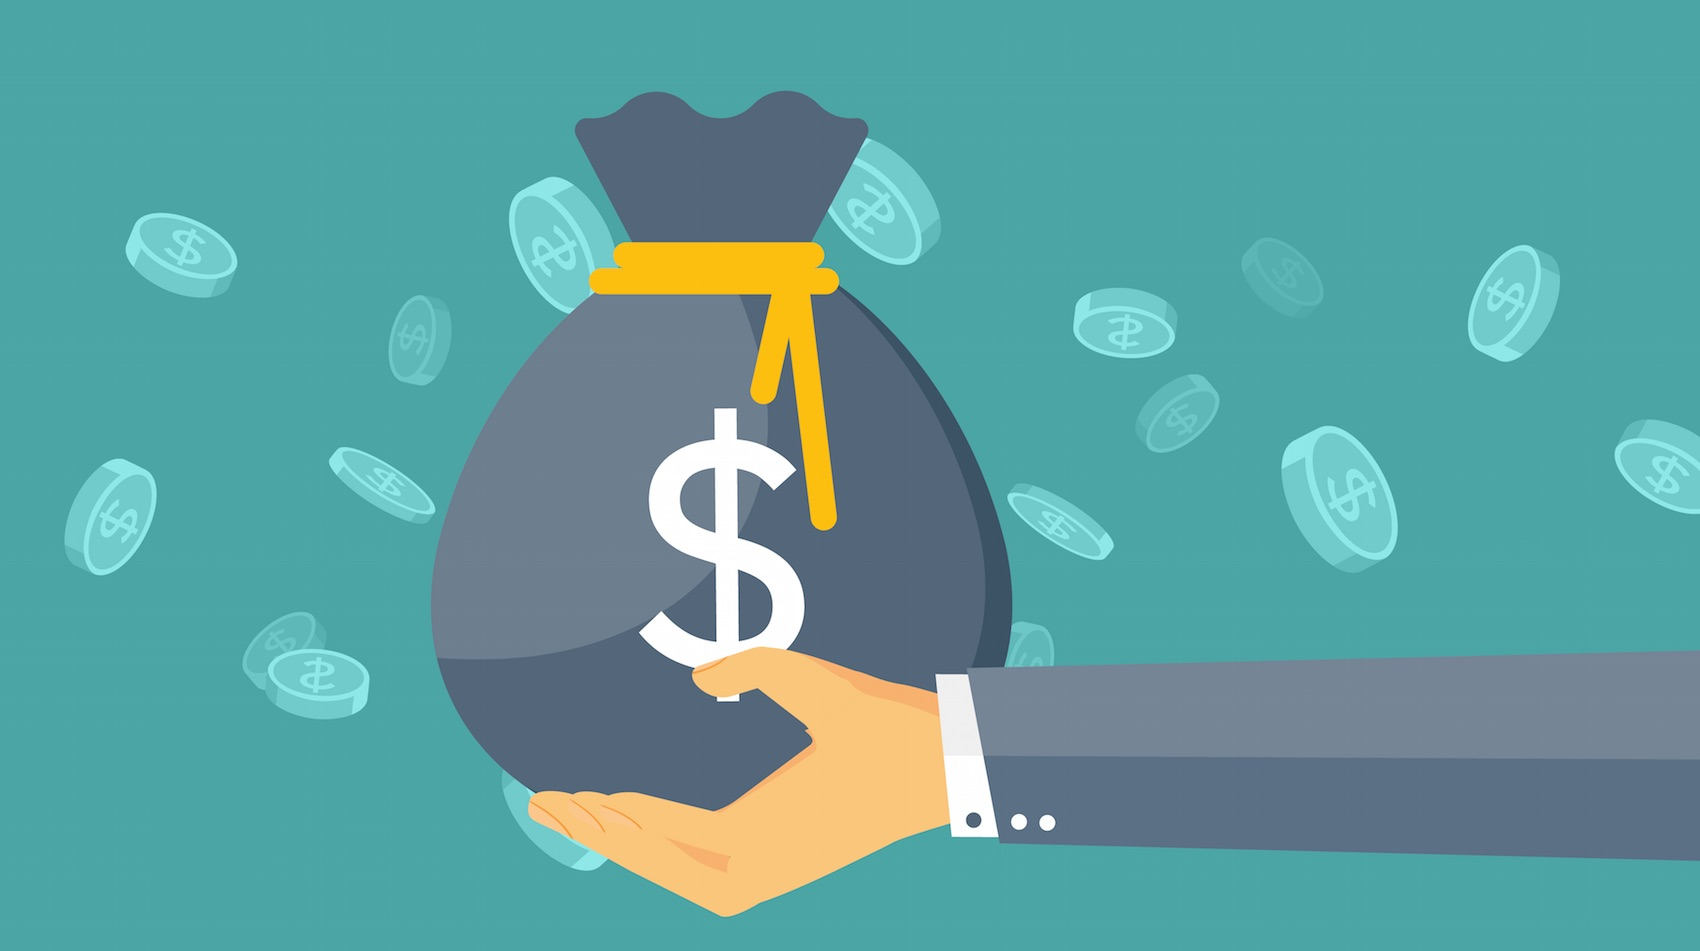 10 ways to monetize your mobile app - The Next Web